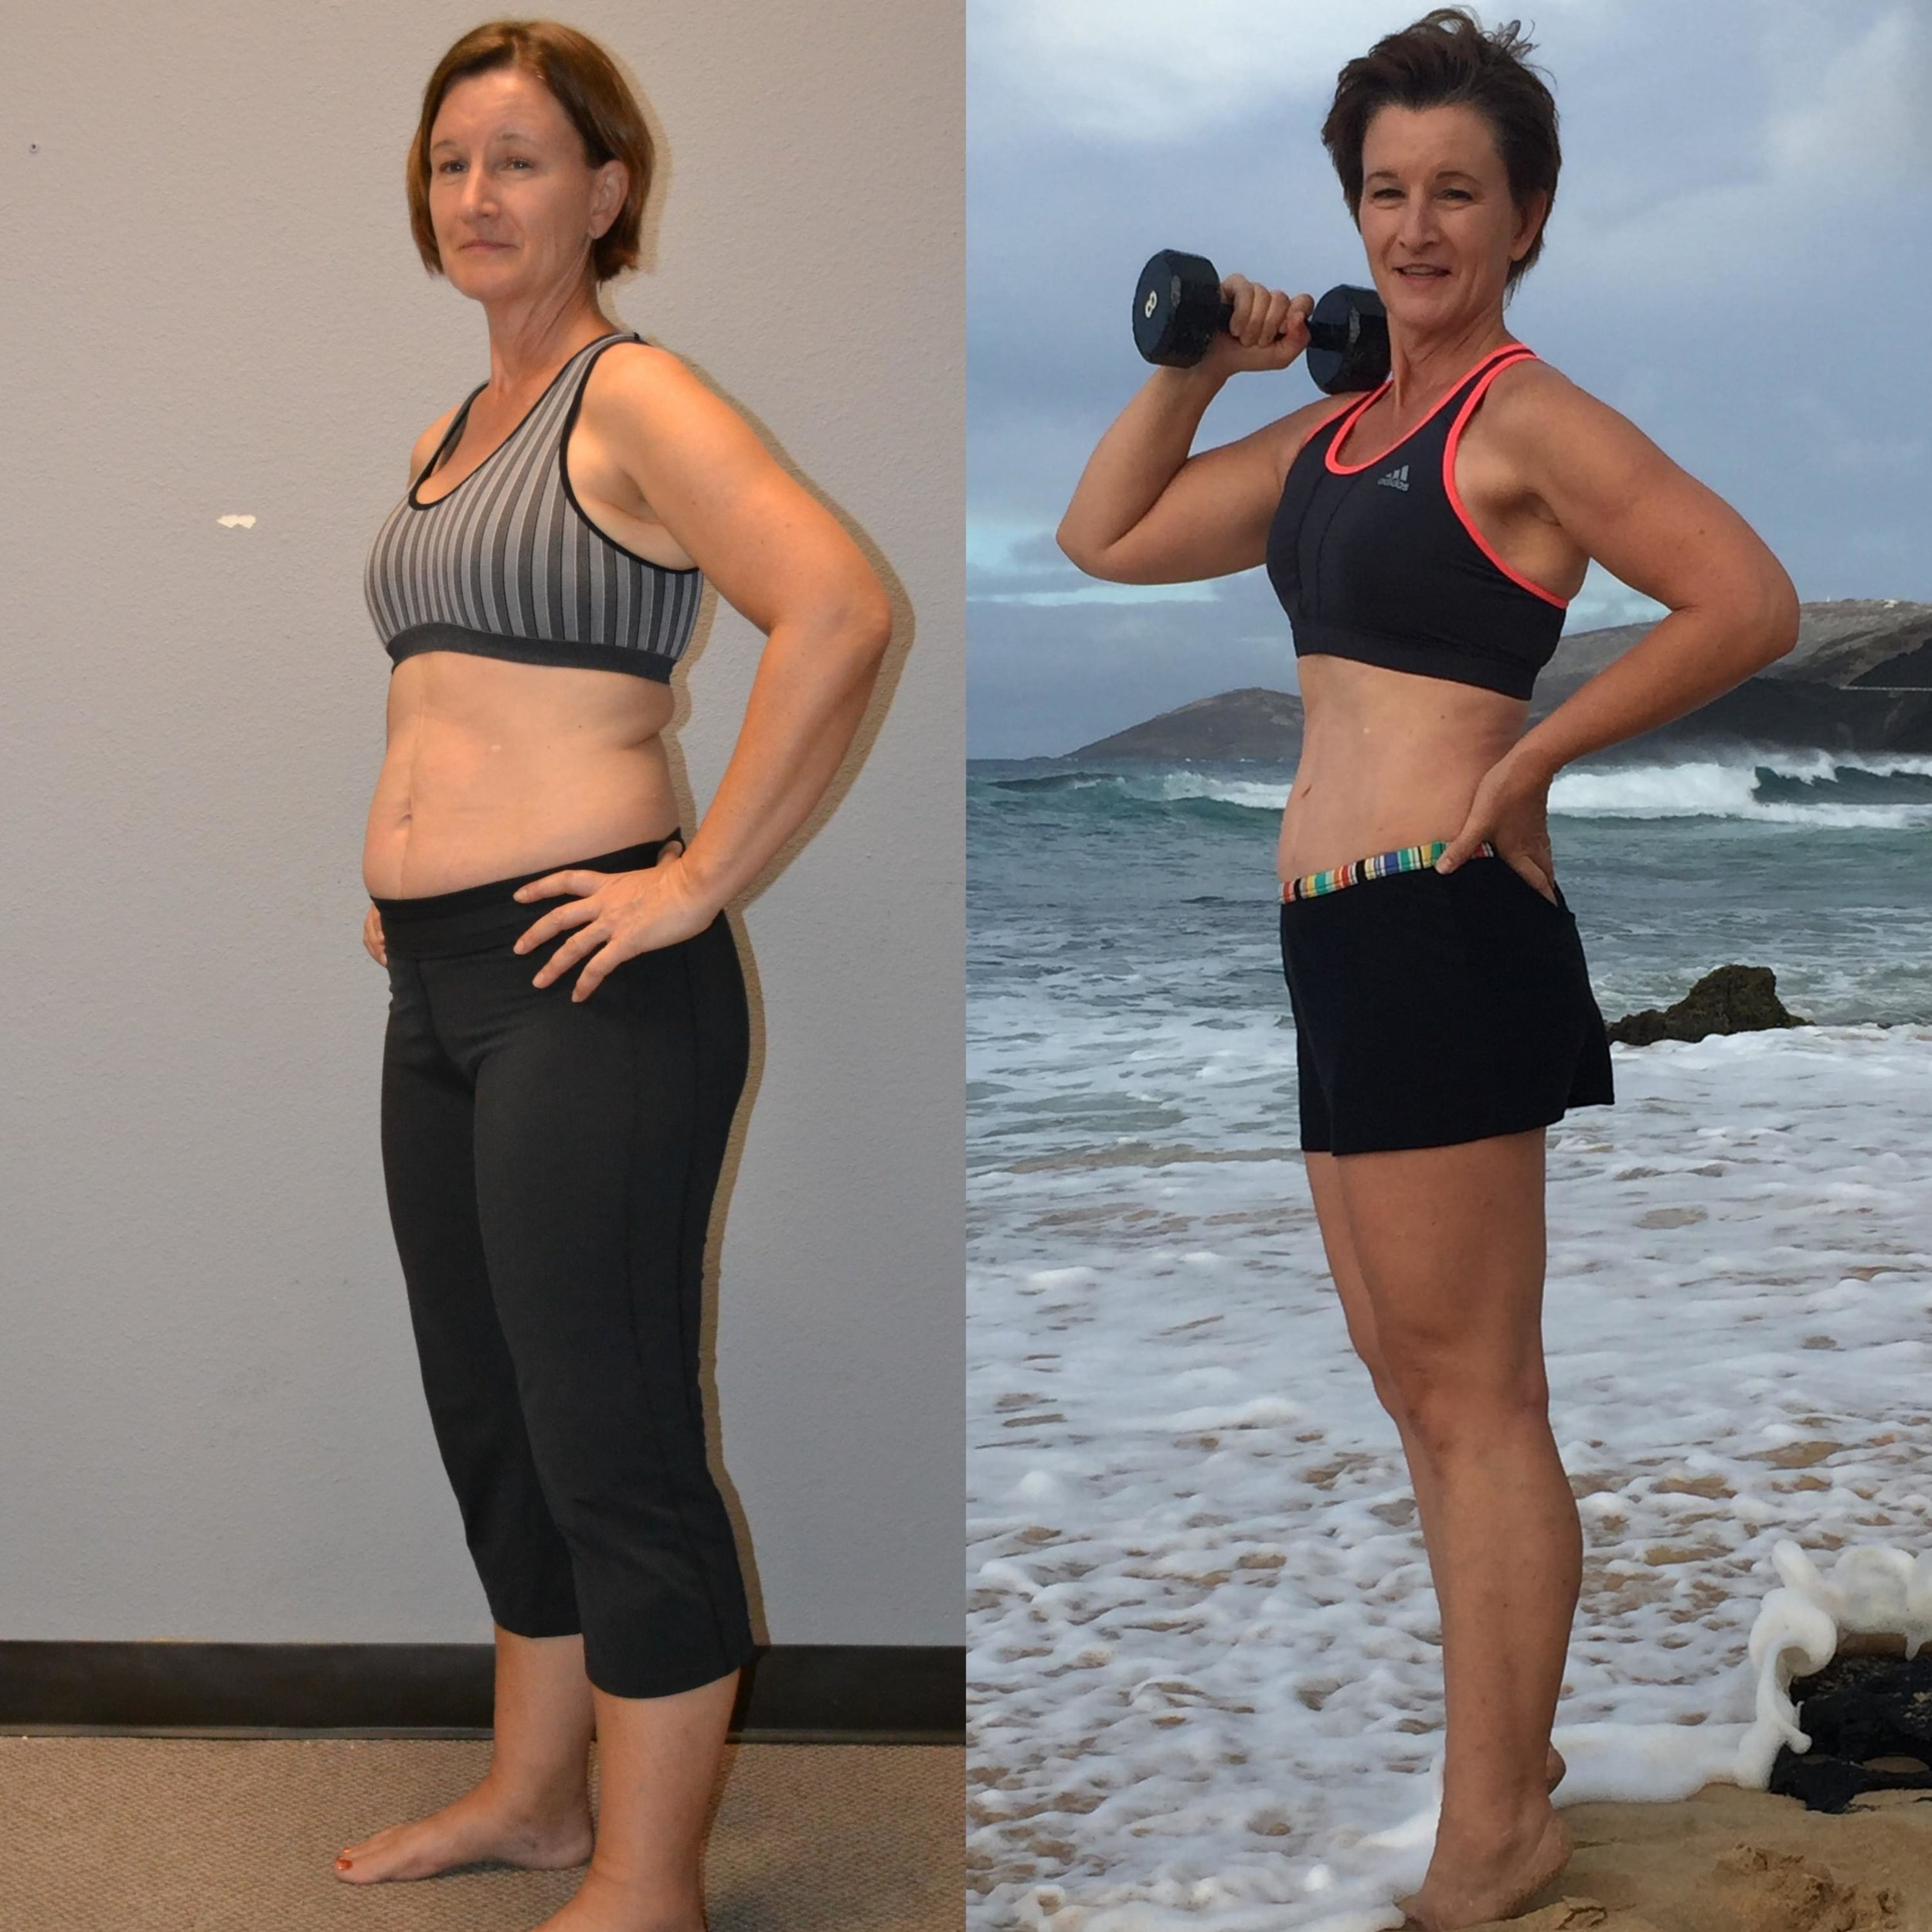 Think you're too burnt out and stressed because of age? Read Anne's Story... - TRANSFORM and Keoni enabled me to lose weight, build strength, and increase energy at a time when many people my age give in to stress, weight gain, and burnout. TRANSFORM creates a cycle of benefits—the more fat I exchange for muscle, the better and stronger I feel and I'm able to achieve more, dedicating me to stick to the plan. Support of others keeps me motivated and honest with myself. I love the guidance, dedication, and interest of the coaches, and camaraderie within my workout group and among the membership in my CrossFit family.-Anne Sing